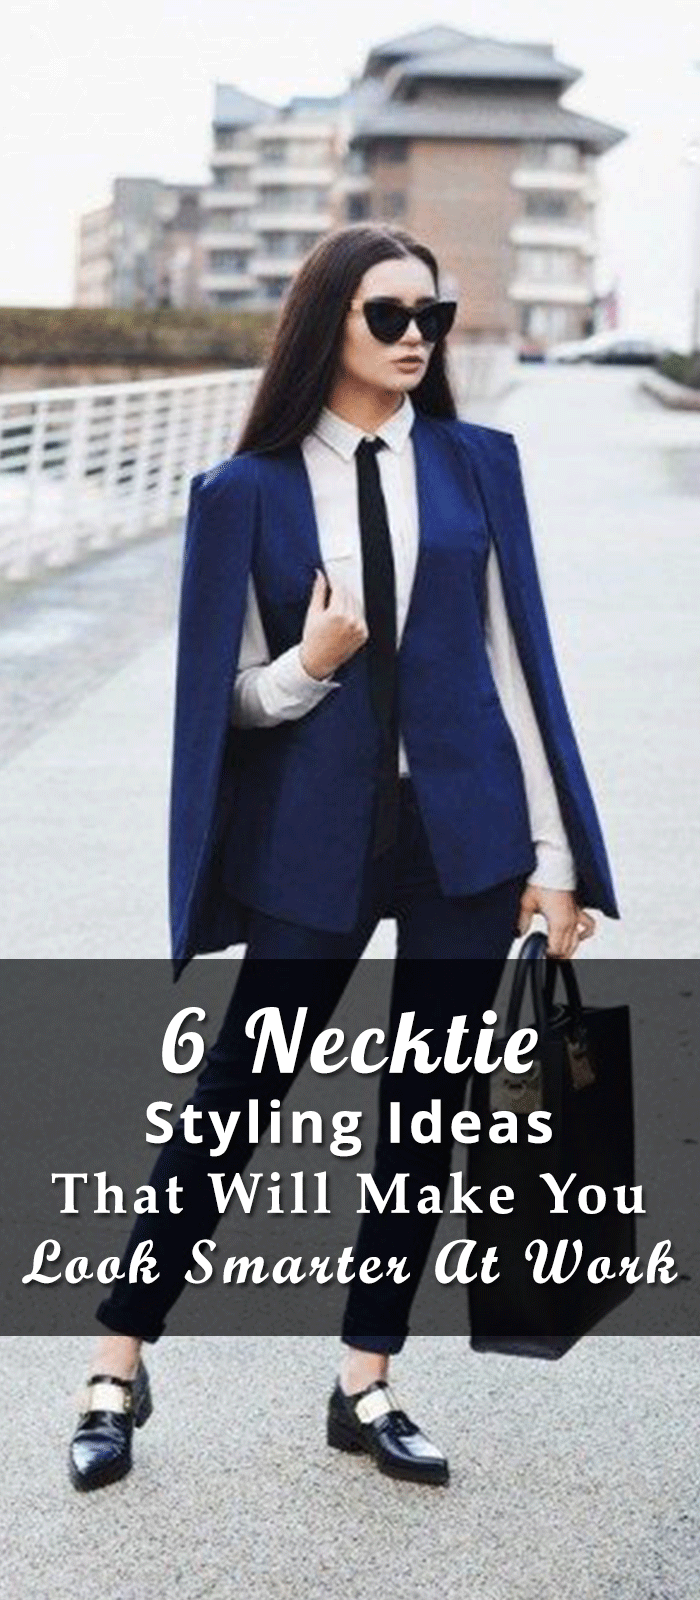 6 Necktie Styling Ideas That Will Make You Look Smarter At Work